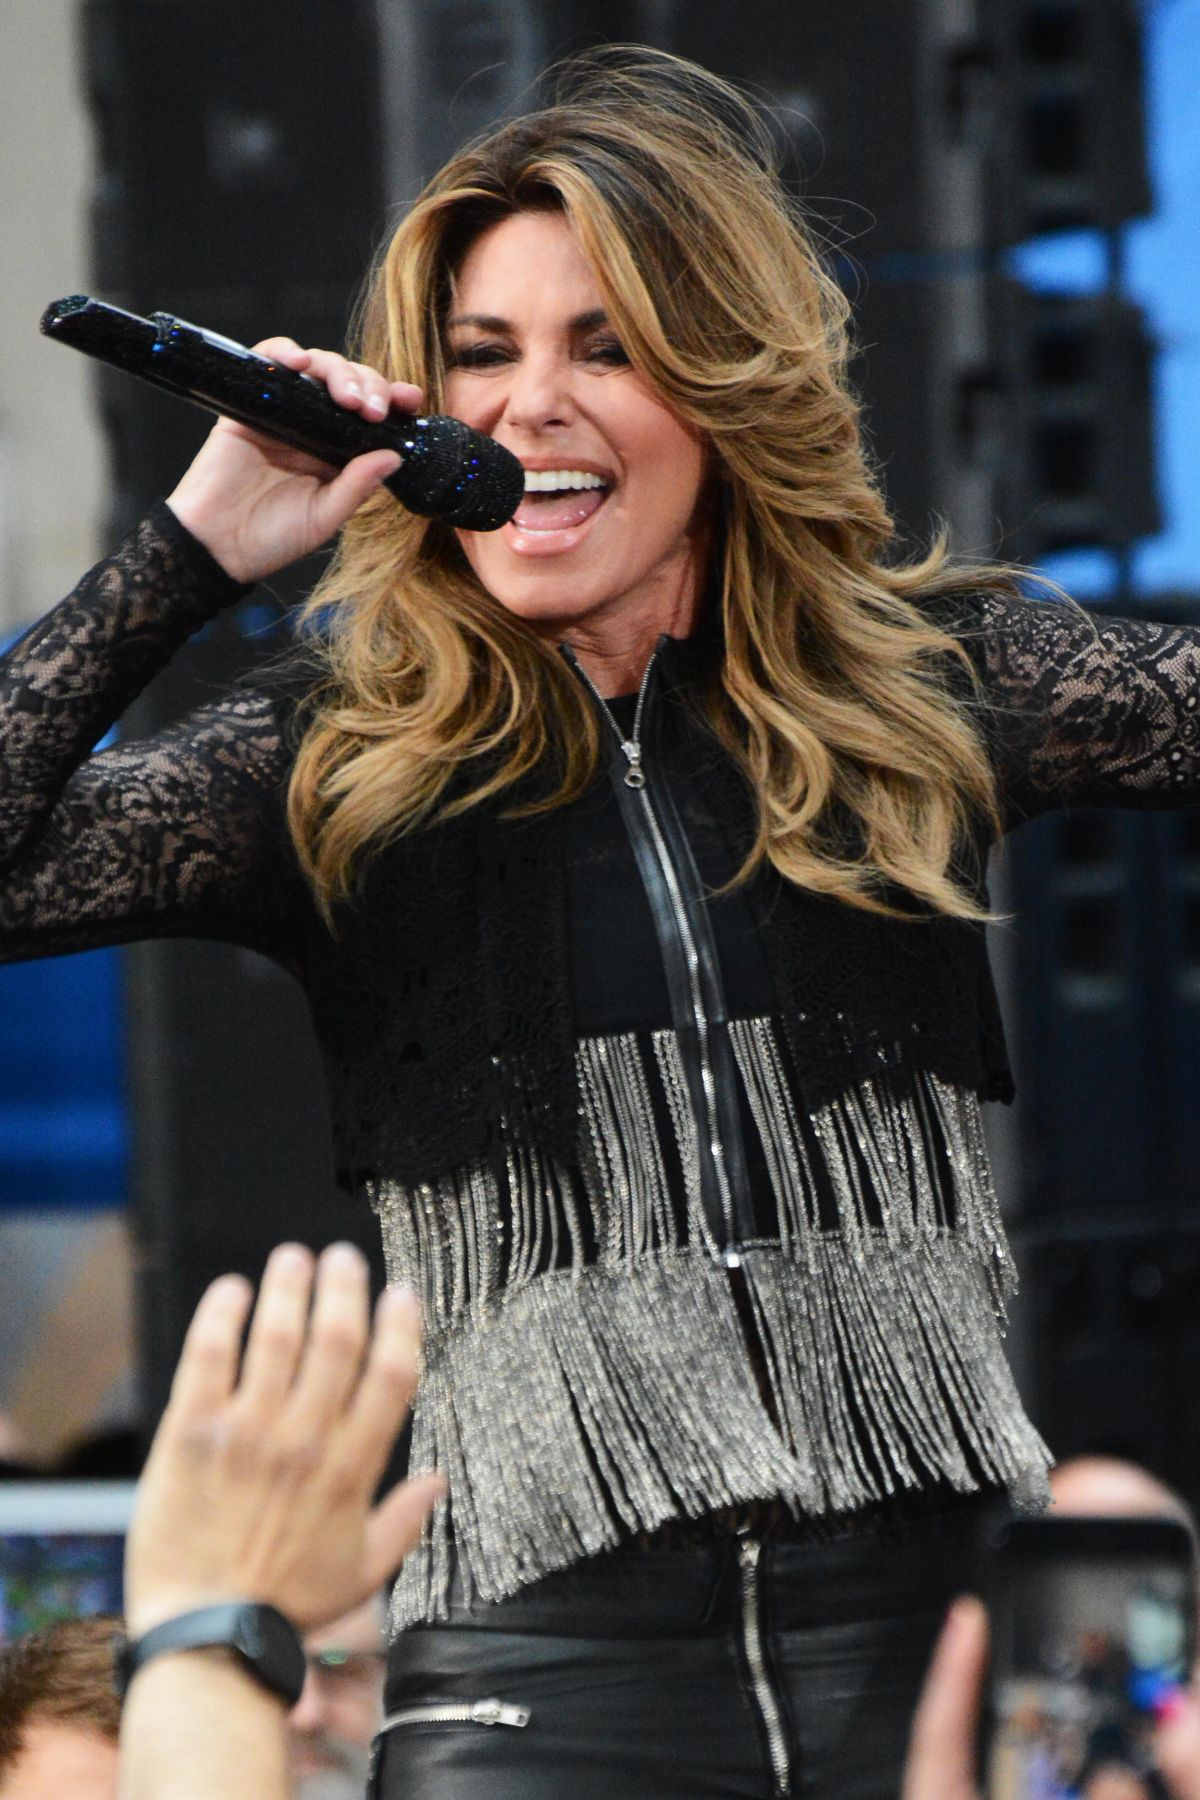 SHANIA TWAIN Performs at Today Show Concert Series in New York 06/16/2017